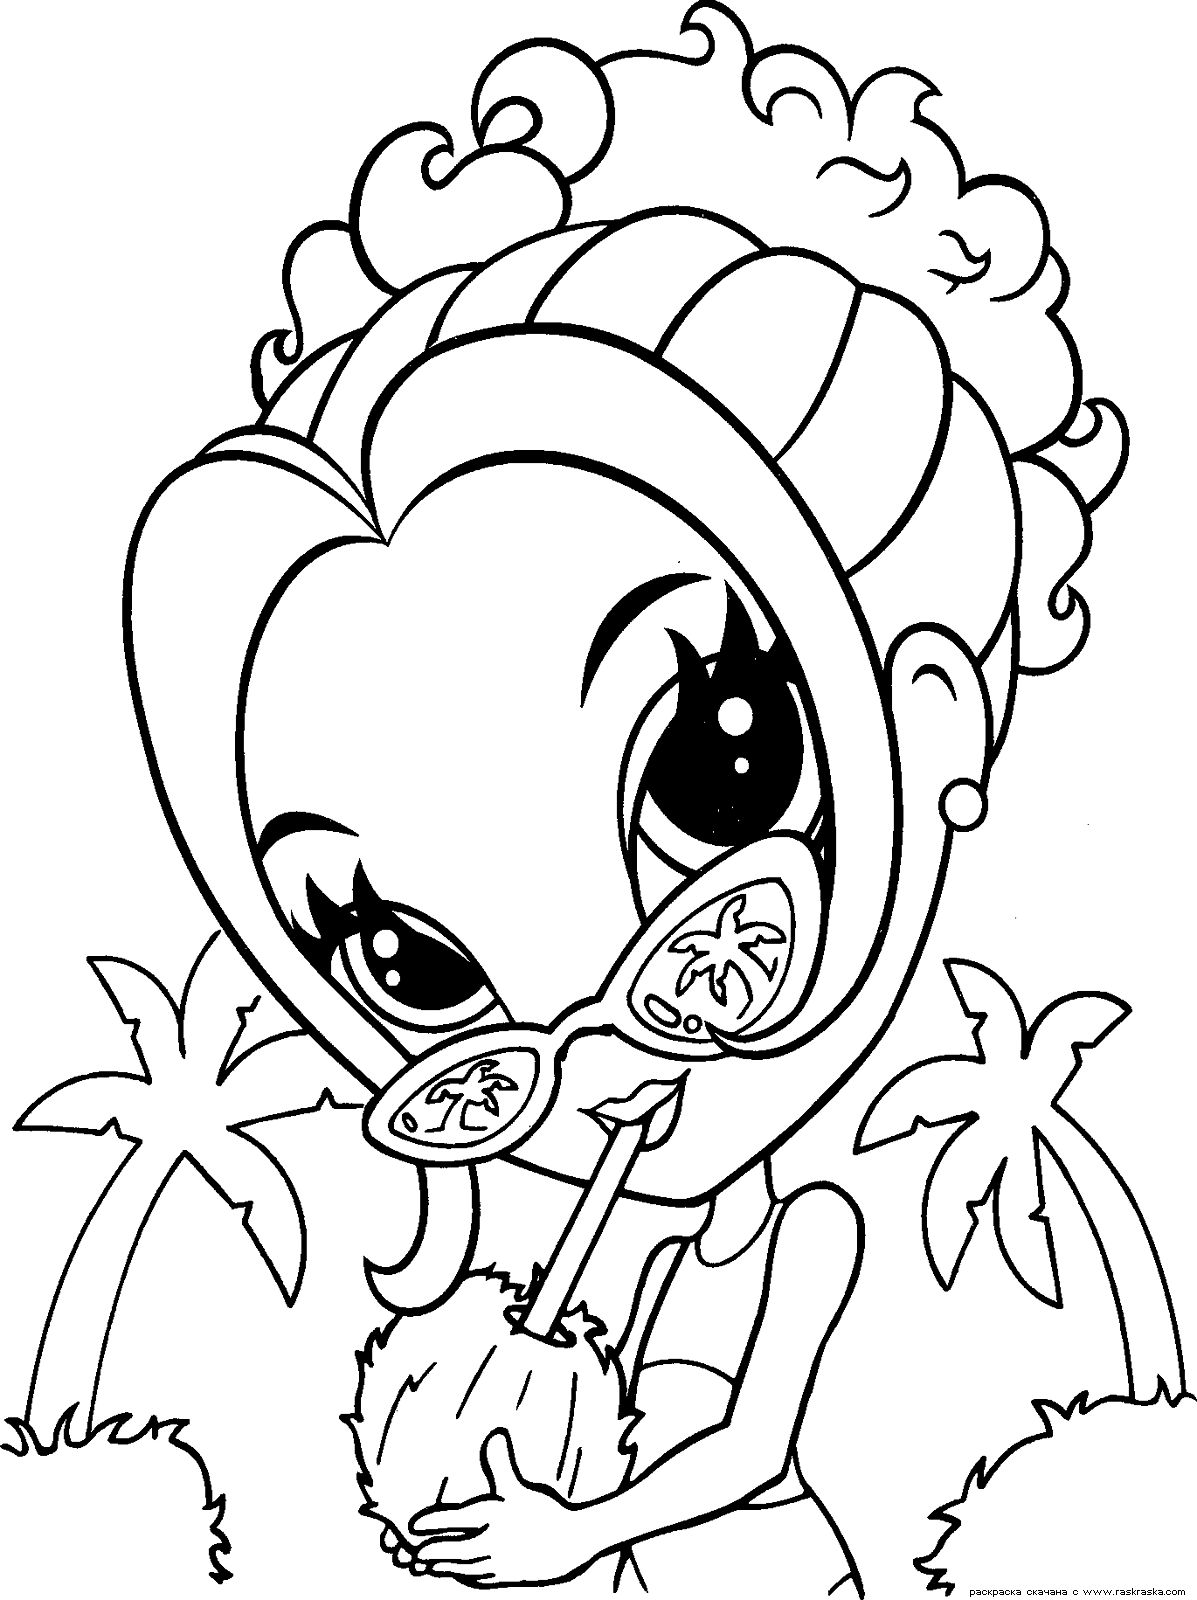 lisa frank coloring pages - photo#24